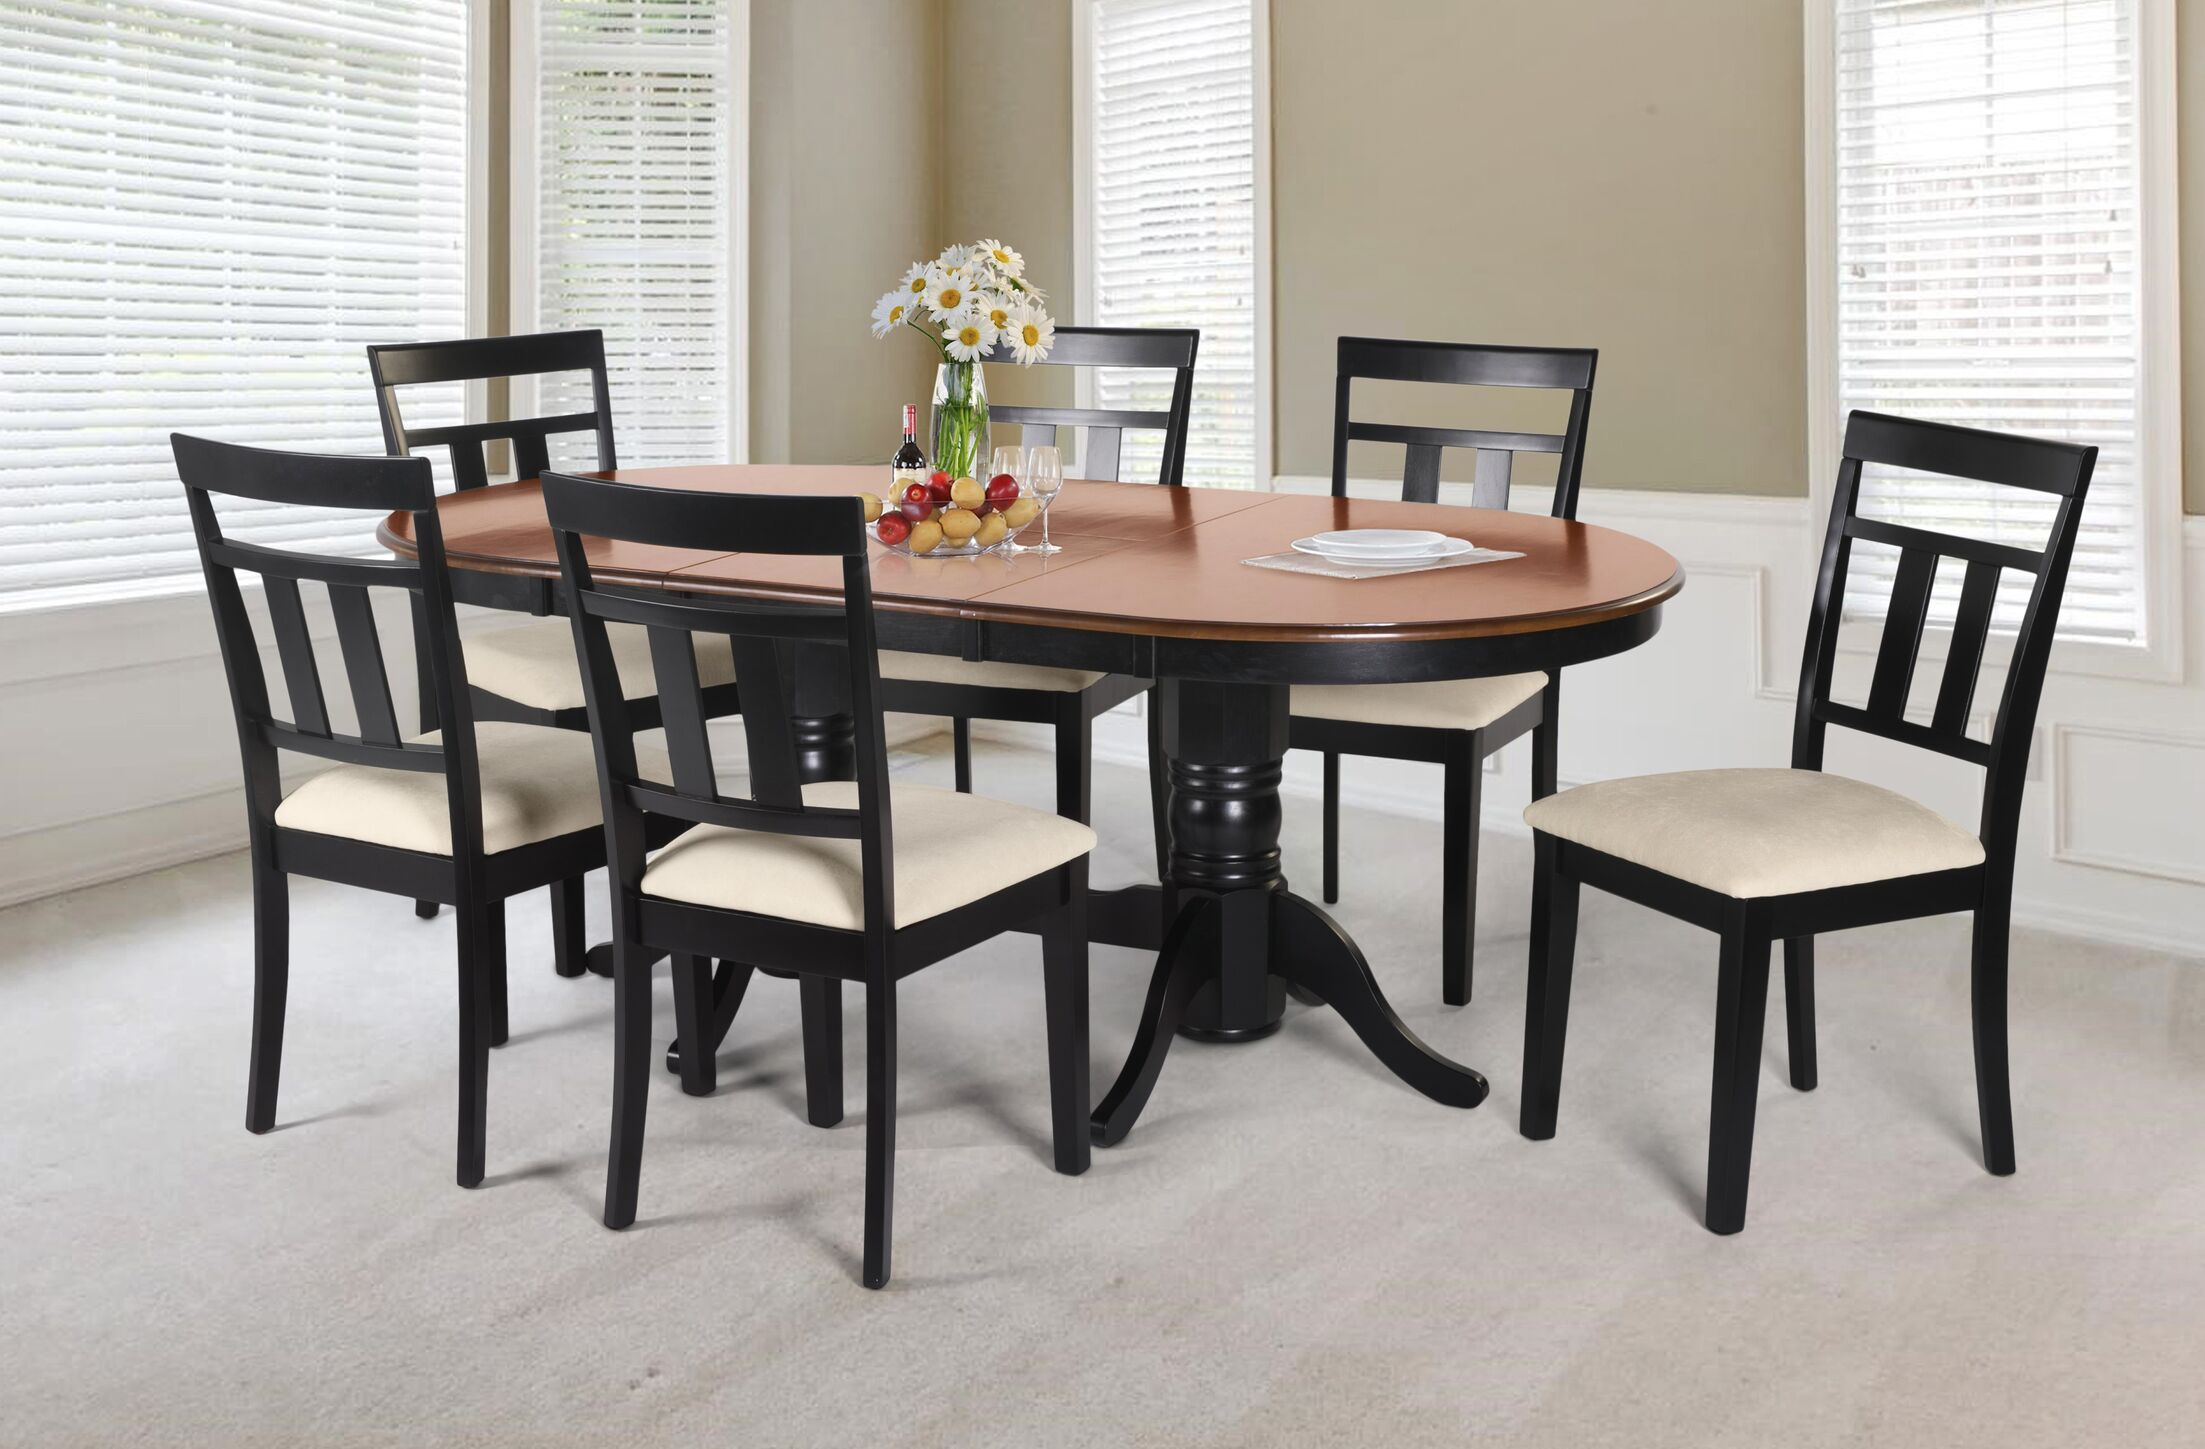 Dining Table Sets Dahlstrom 7 Piece Solid Wood Dining Set